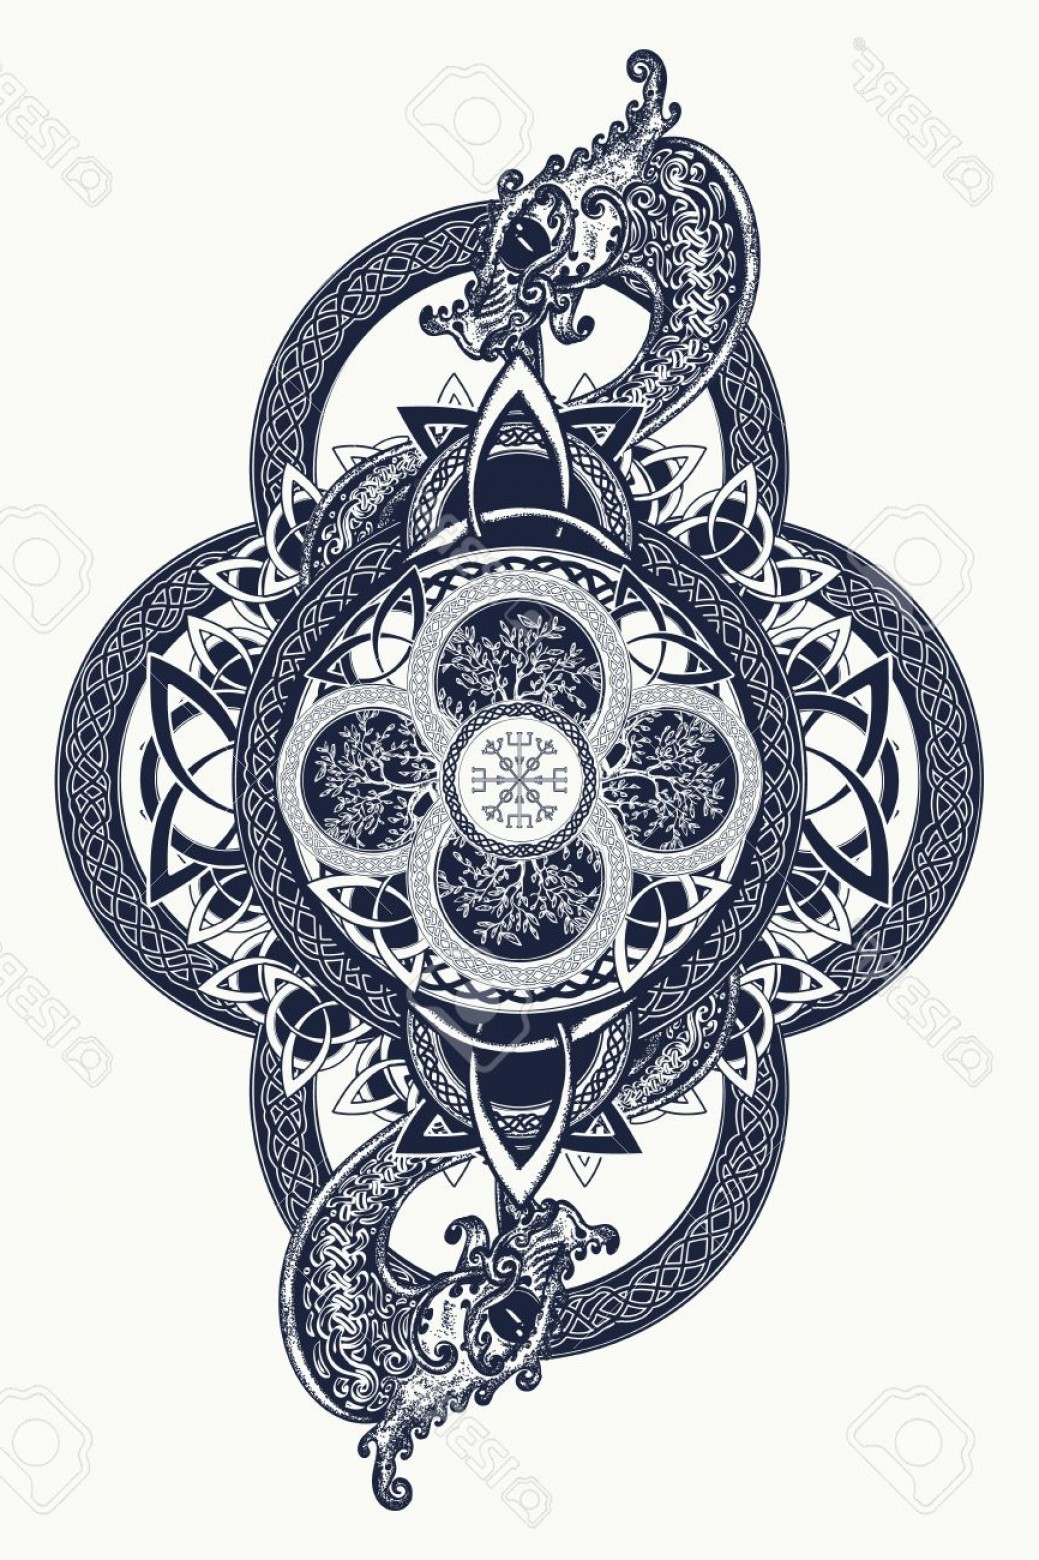 Celtic Tree Vector: Photostock Vector Dragons And Celtic Tree Of Life Tattoo Mystic Tribal Symbol And T Shirt Design Celtic Mystical Signs